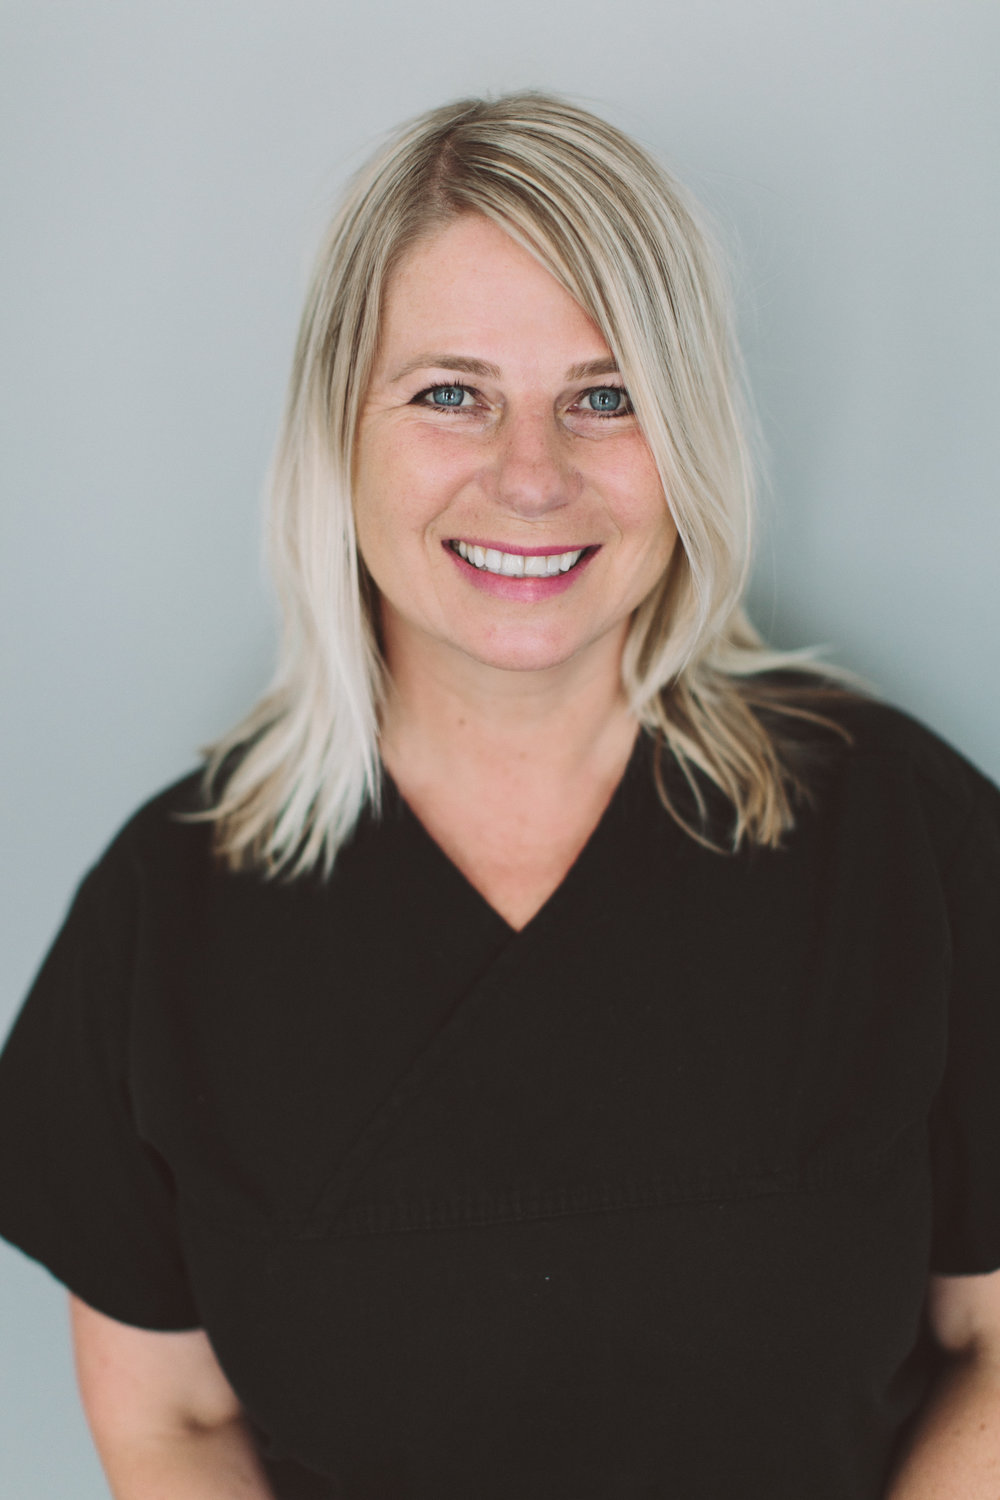 Raquel - Raquel has over 20 years experience as a registered dental hygienist. She graduated from Georgian College in 1995, with further education at the University of British Columbia.After working in Vancouver for almost 9 years, she returned to the Sault in 2003 to work for Dr. Barzan Sr.. Raquel loves being a Dental Hygienist who prides herself in excellent professional care. She has a special background training and work experience in periodontics.In her spare time, Raquel enjoys travelling, participating in many sports and spending time with her husband Bob.